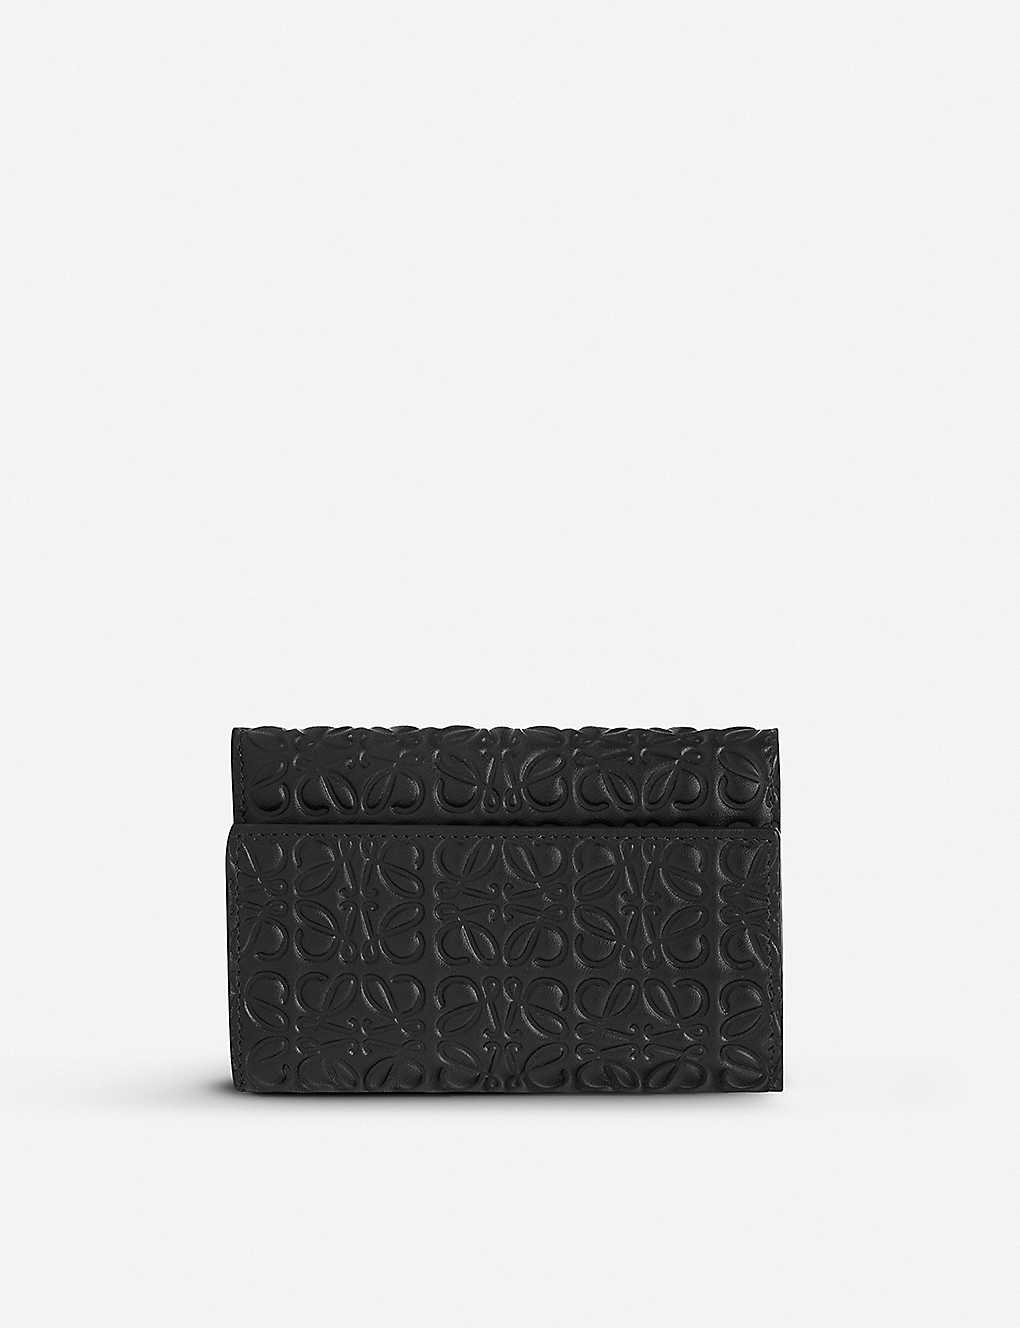 0552efe5f9 LOEWE - Embossed leather small wallet | Selfridges.com